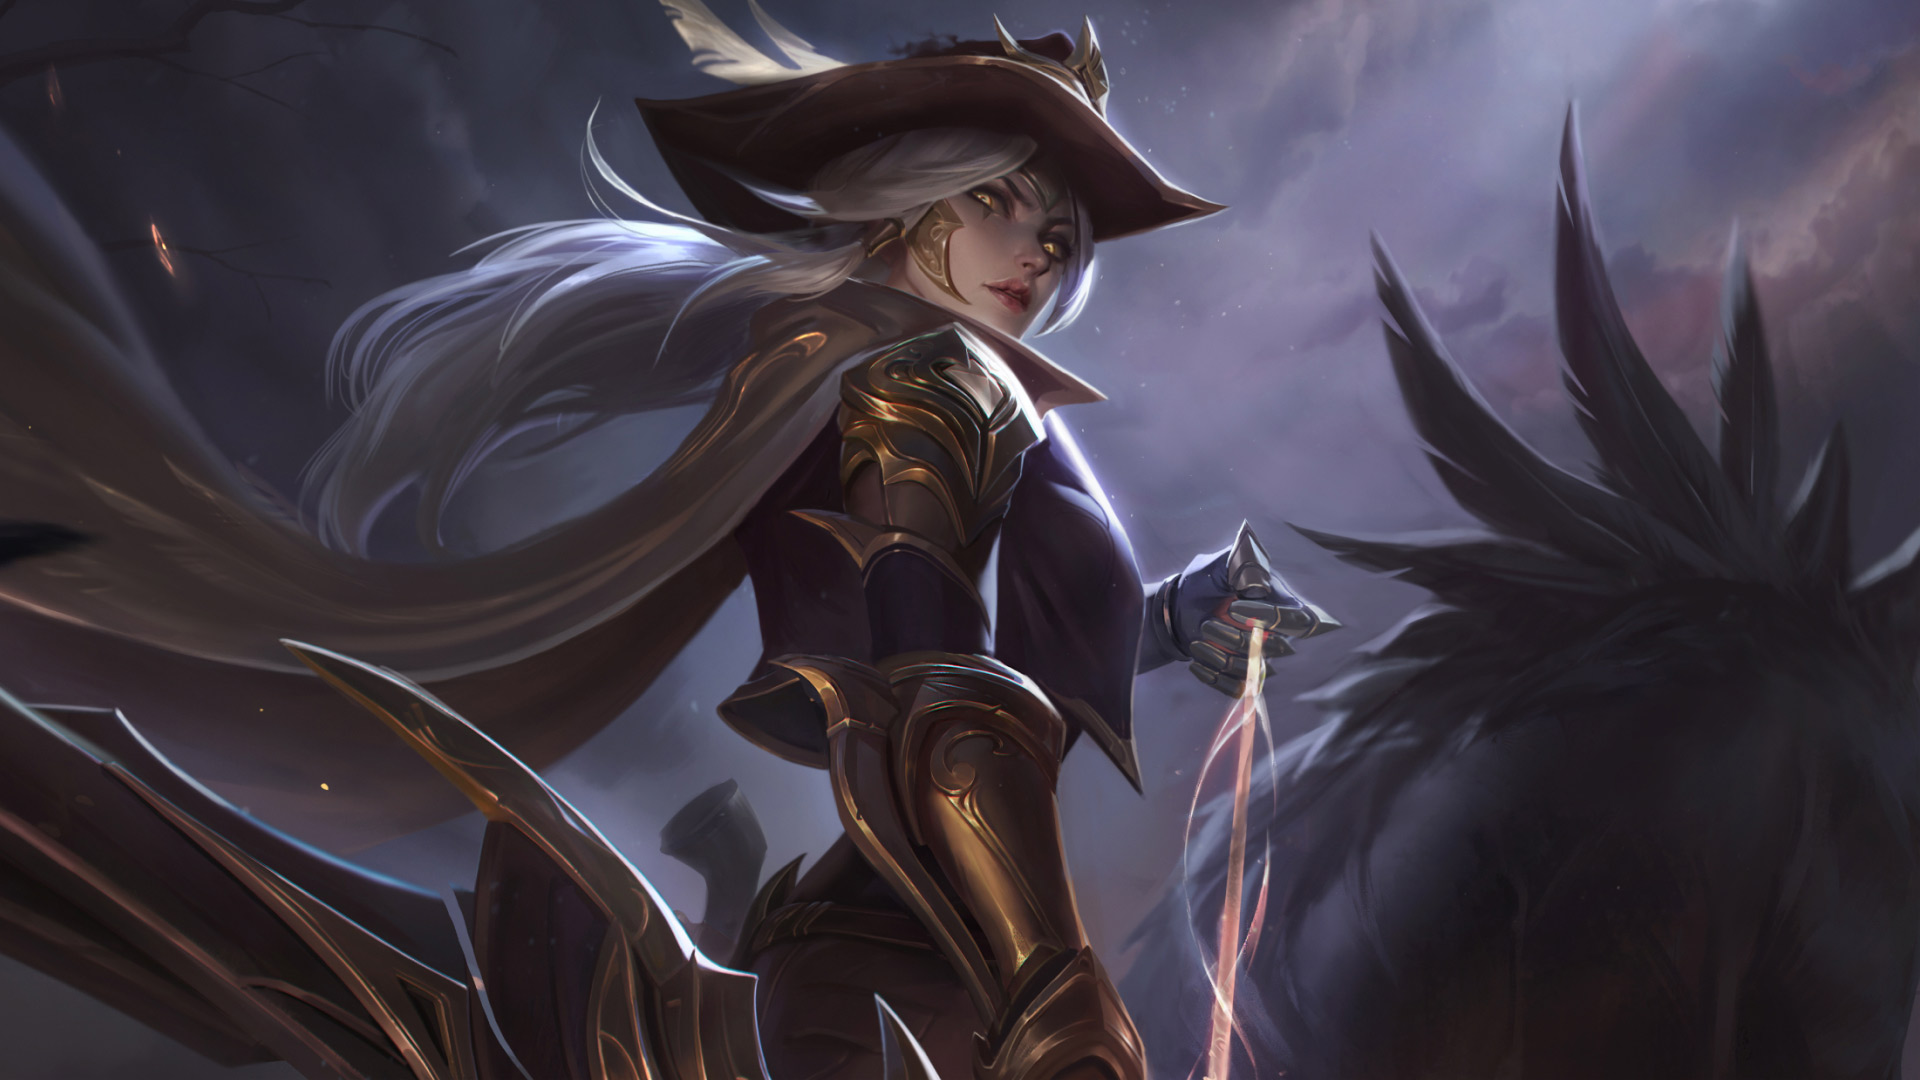 hnashe crop banner - Download League of Legends Code of Conduct for FREE - Free Game Hacks